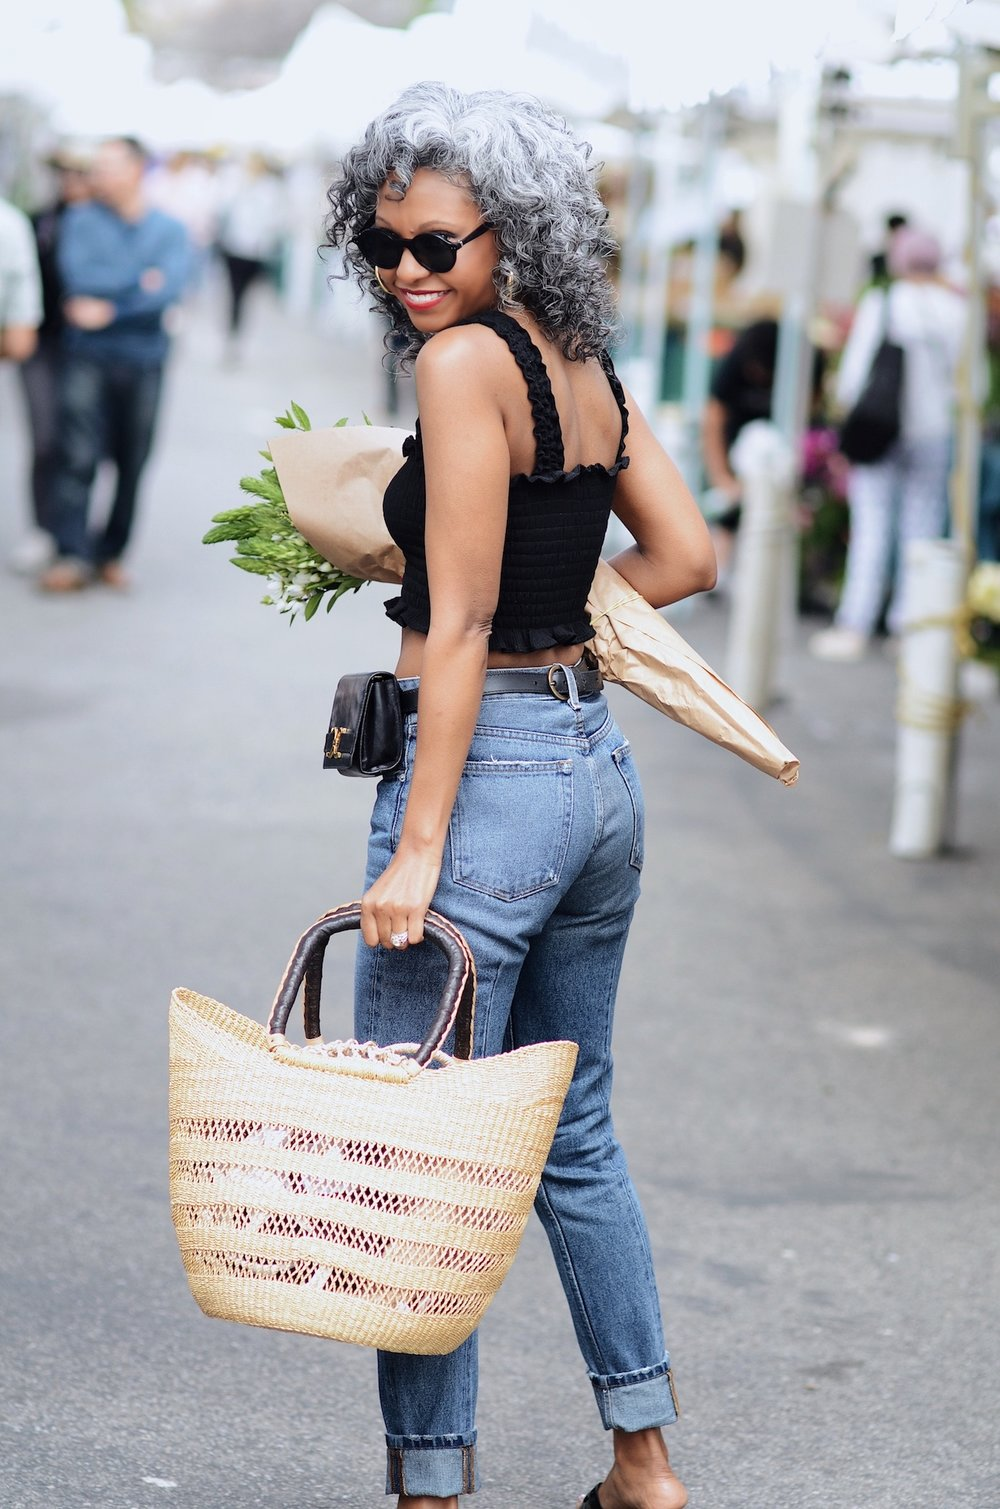 Reformation jeans and top farmer's market outfit // A Week Of Sophisticated Slow Fashion Outfits With Tennille Murphy From The Tennille Life on The Good Trade